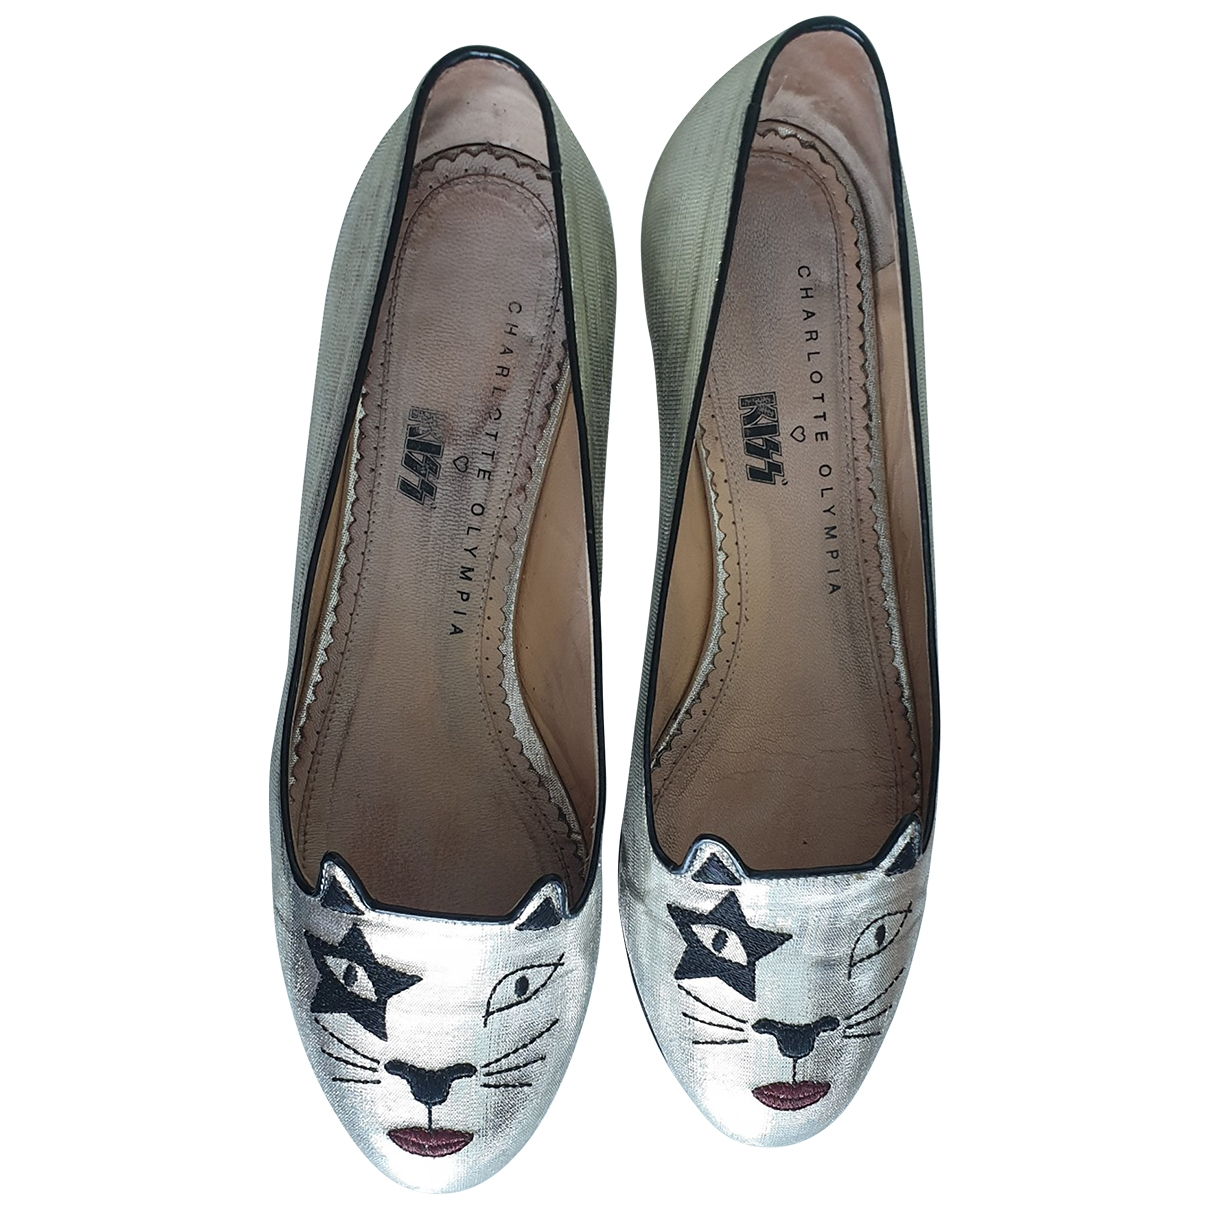 Charlotte Olympia \N Silver Leather Ballet flats for Women 38 EU